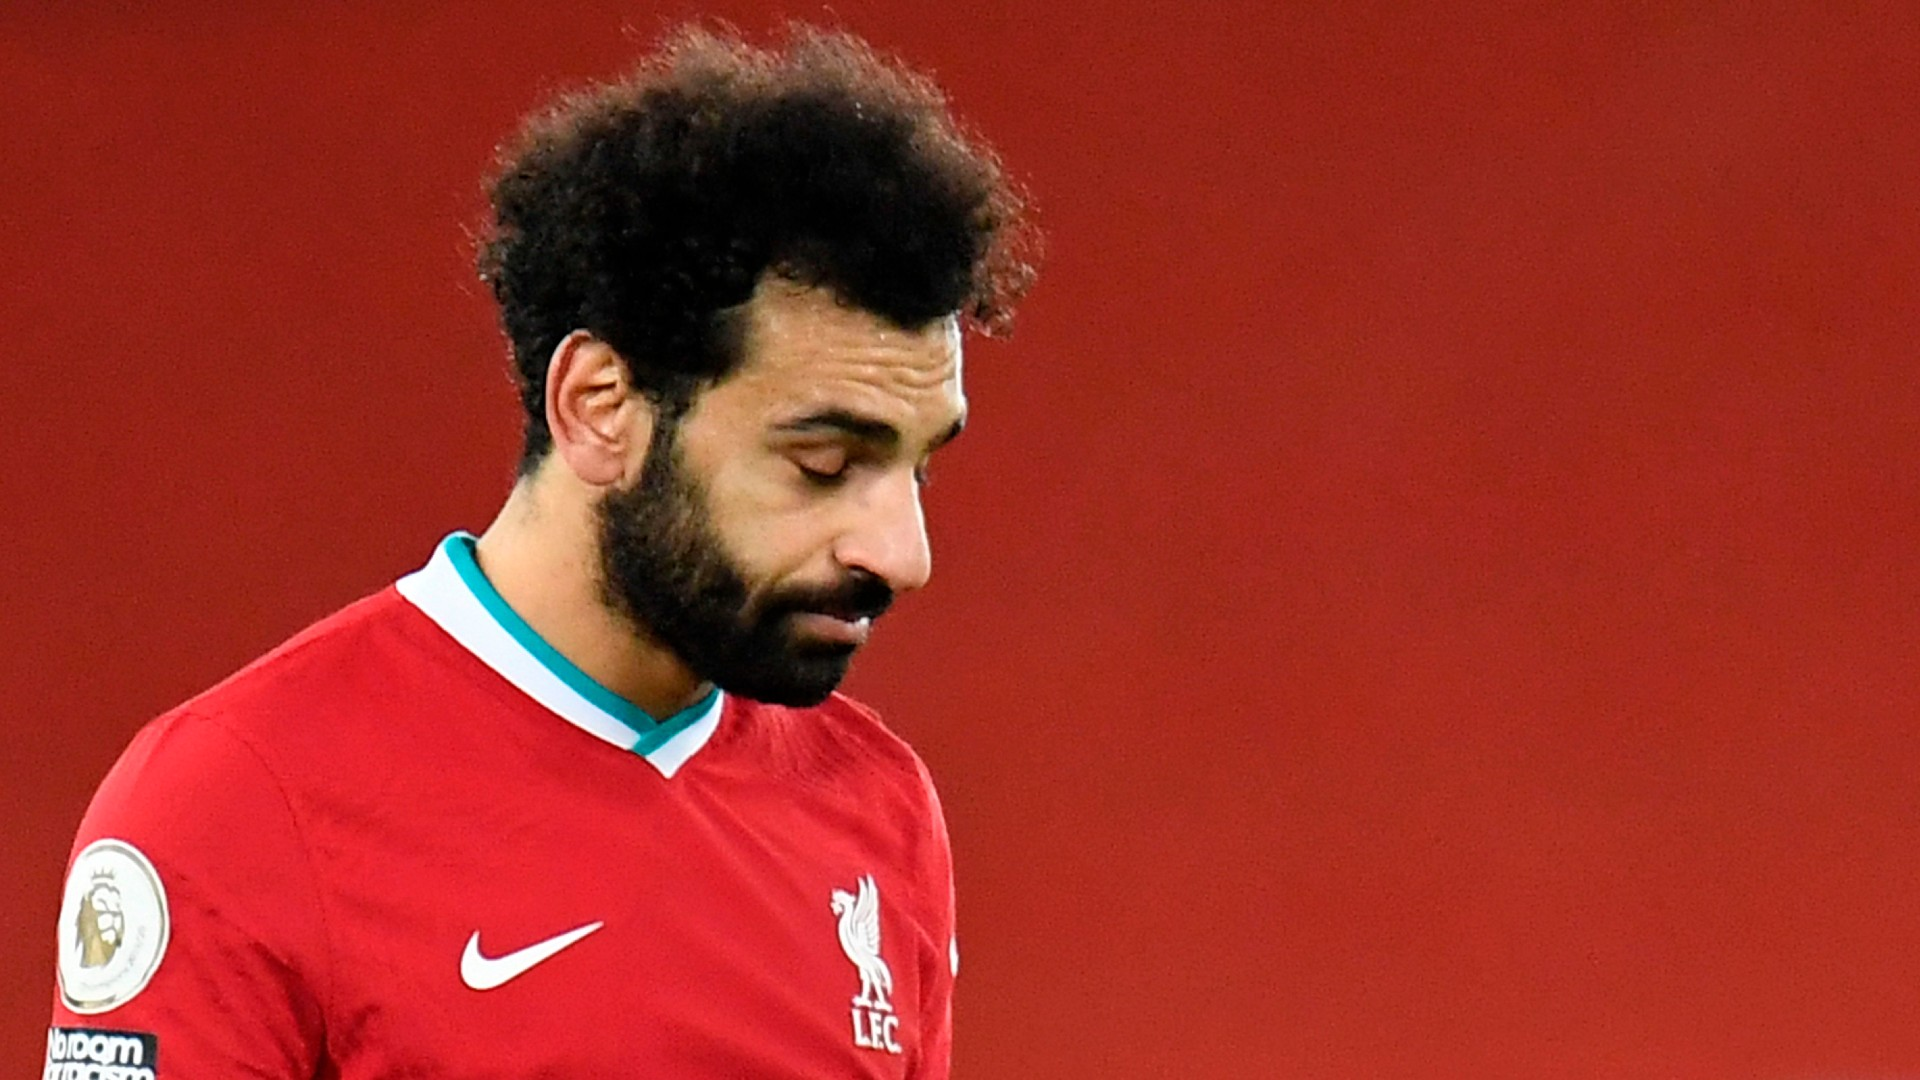 'The title is slipping away' – Liverpool 'will start worrying about top four' after Burnley humbling, says Carragher